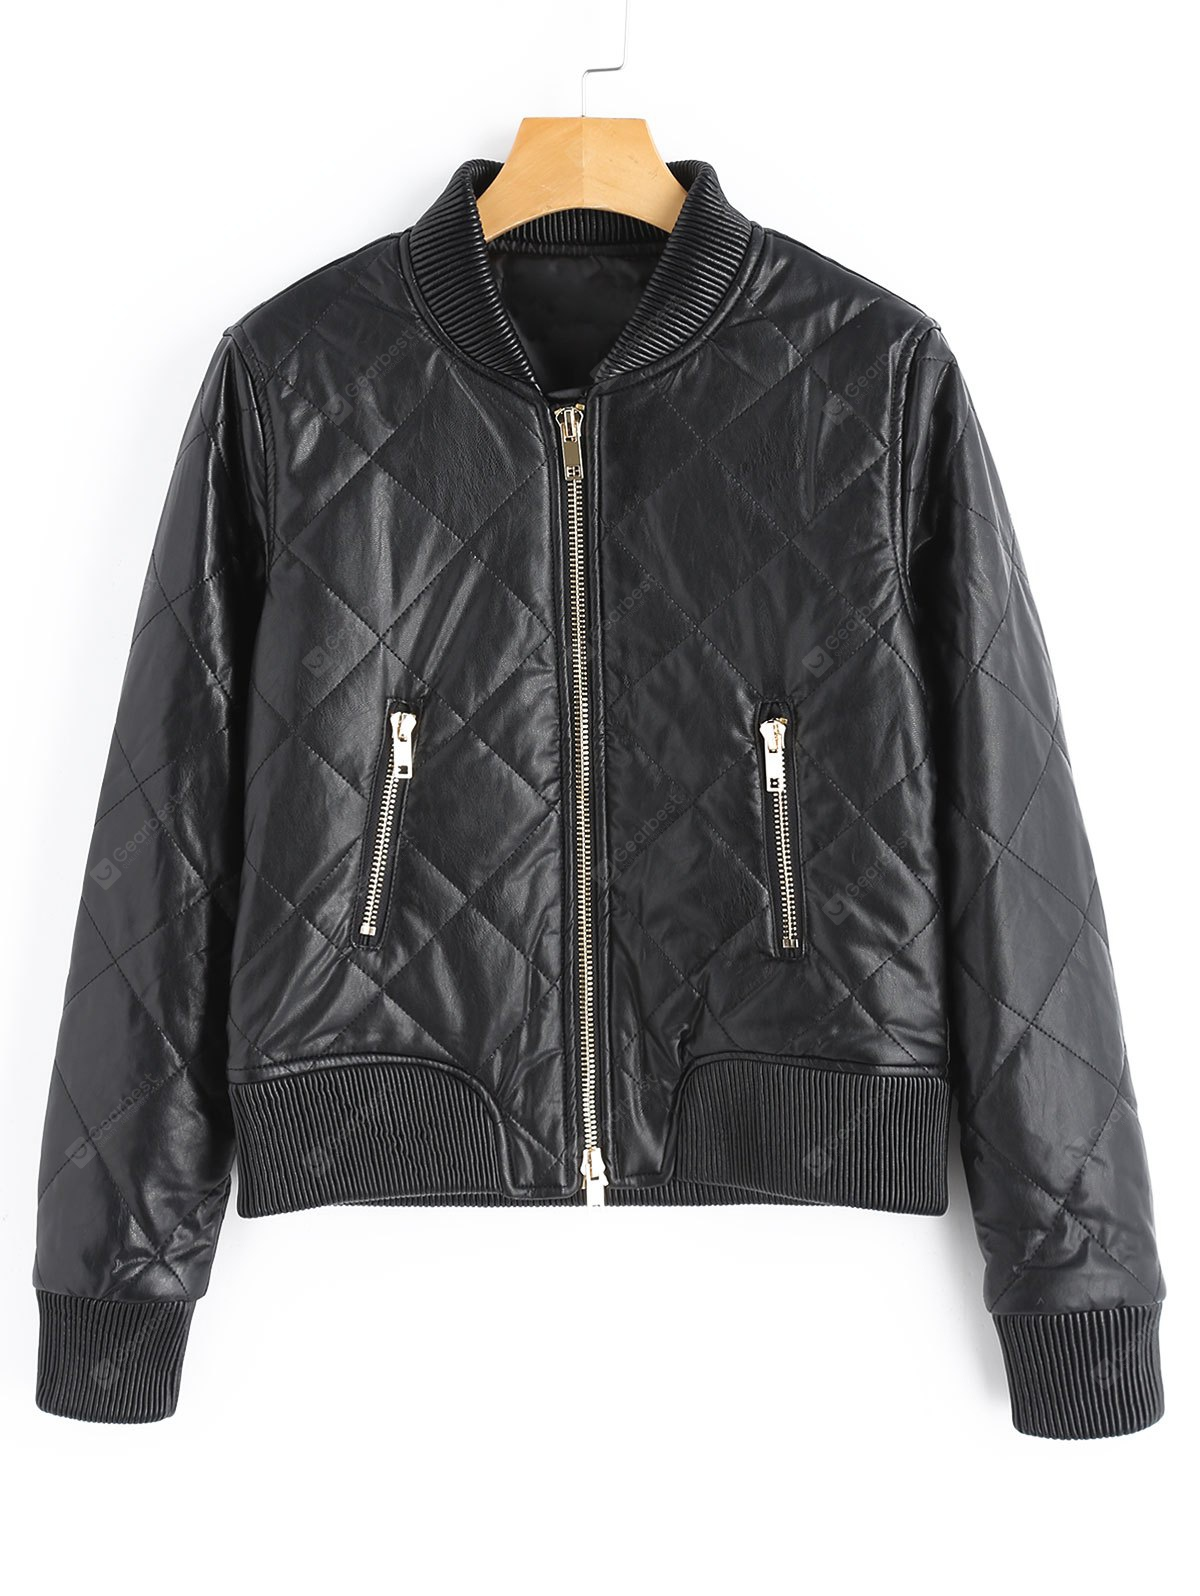 PU Leather Zip Up Jacket with Pockets